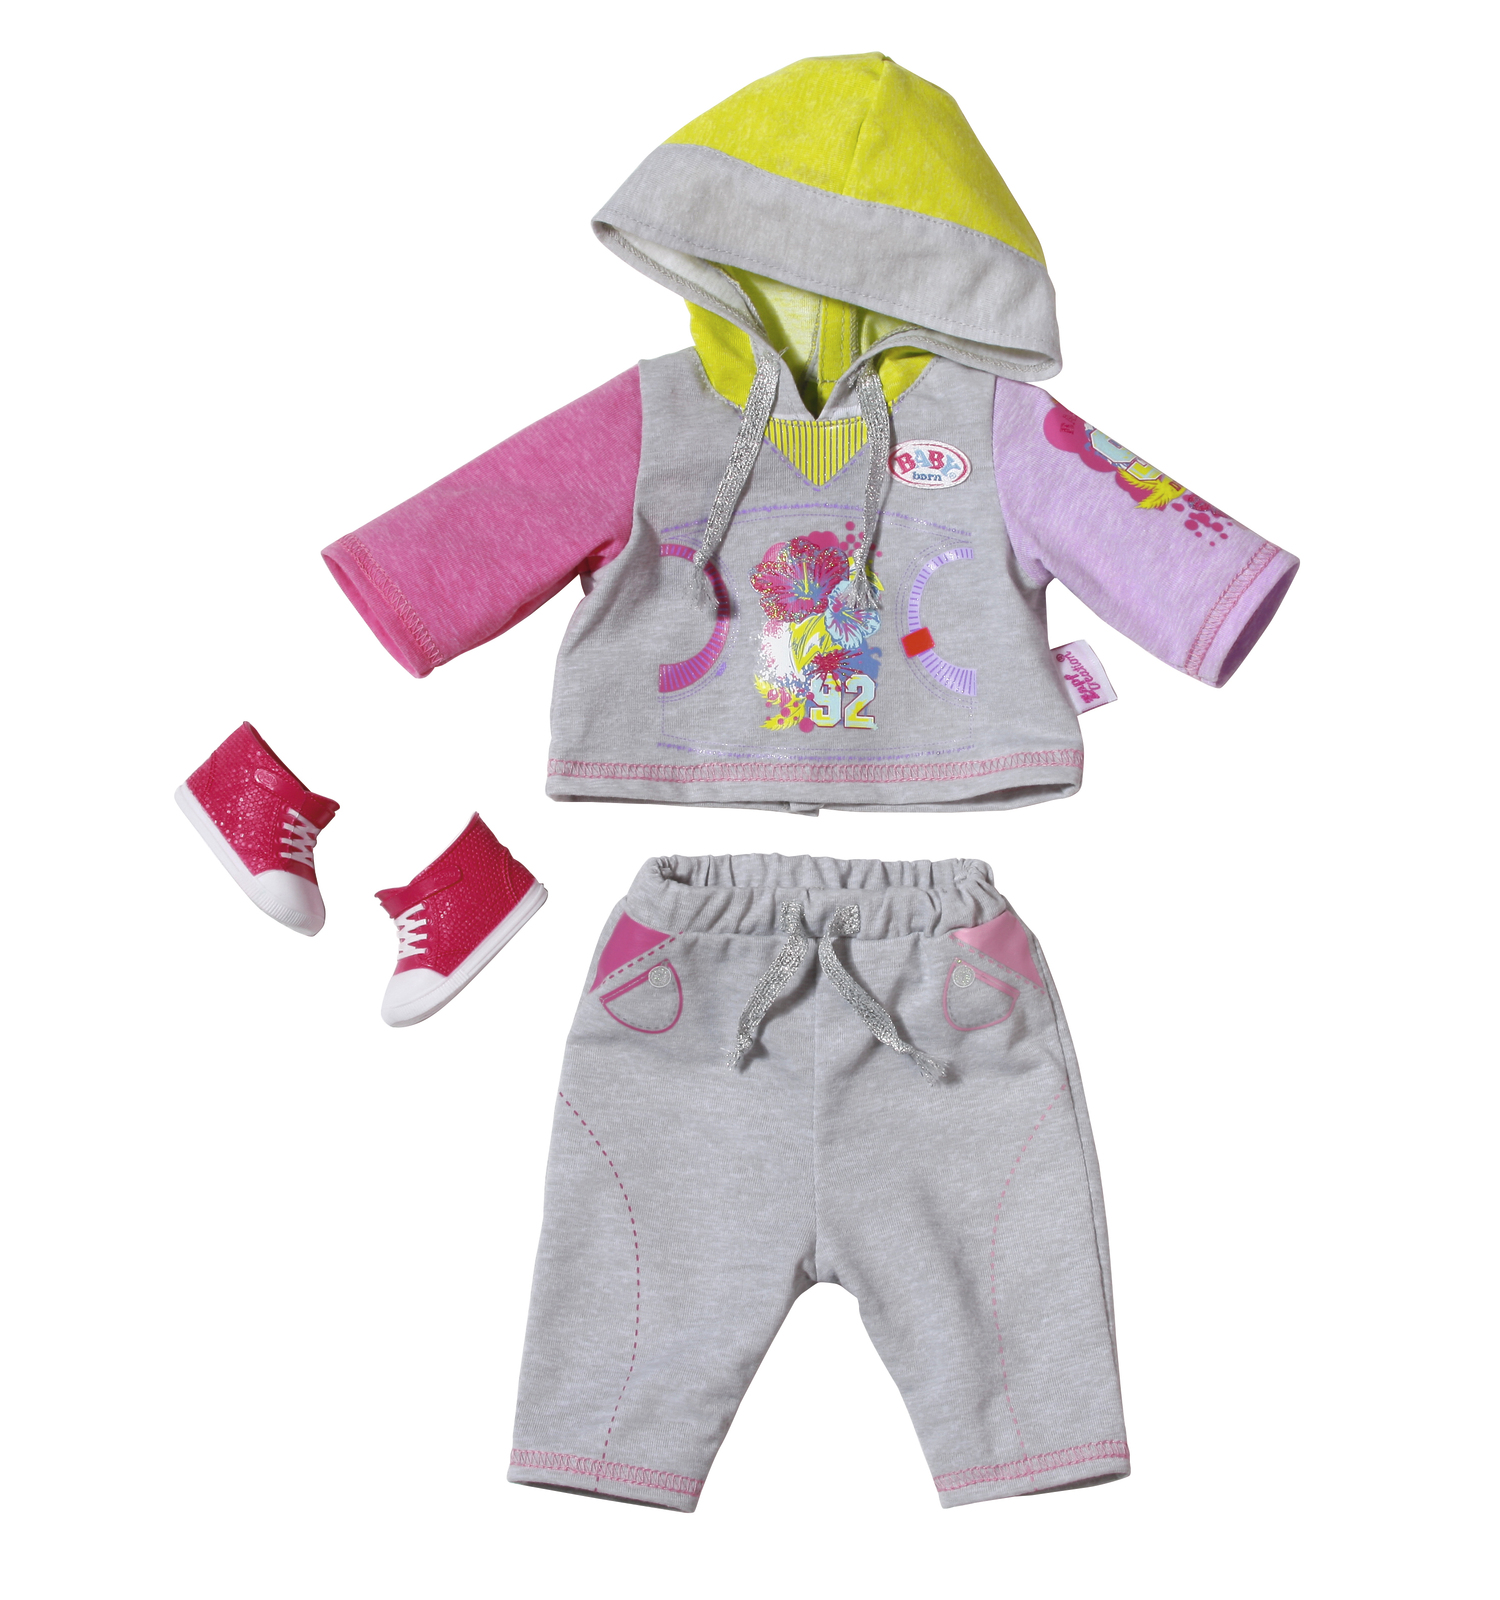 Baby Born - Deluxe Jogging Set - Grey image